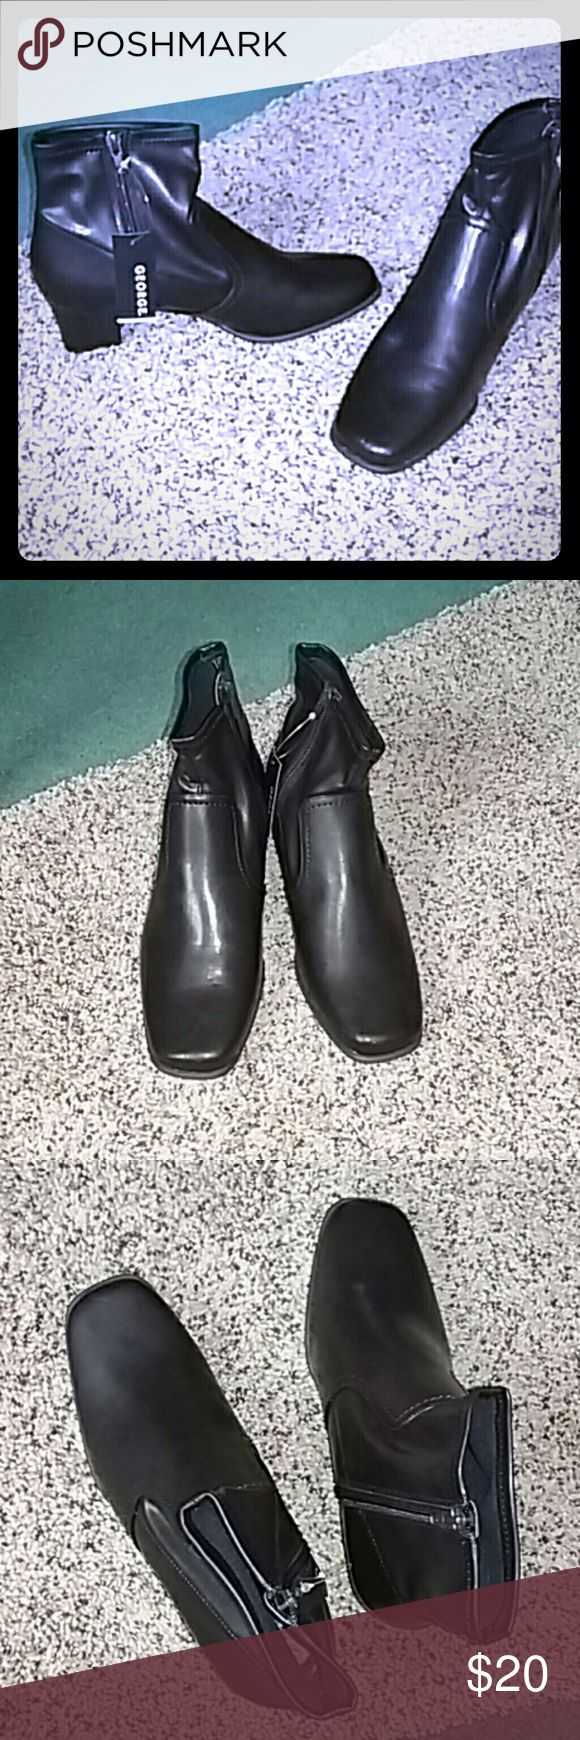 Beatle Boots Dark Brown Brand New In Box Very dark brown George Frances ankle boot brand new in box, never worn, still with tag attached. All manmade materials. Size 8 George Shoes Ankle Boots & Booties